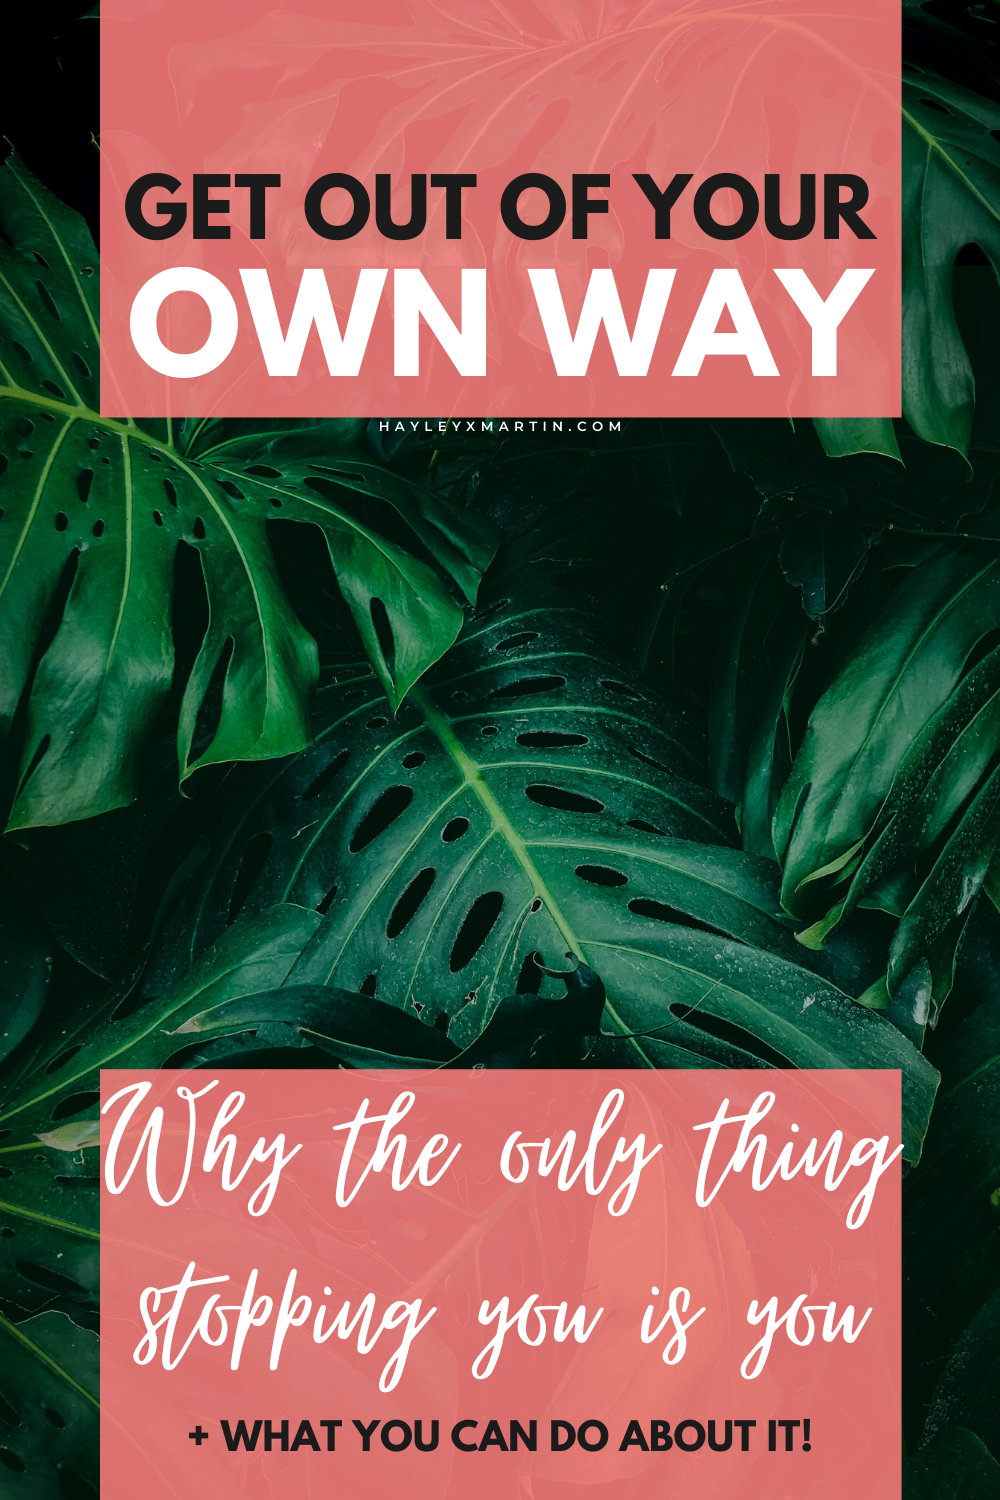 GET OUT OF YOUR OWN WAY | WHY THE ONLY THING STOPPING YOU IS YOU + WHAT YOU CAN DO ABOUT IT | HAYLEYXMARTIN